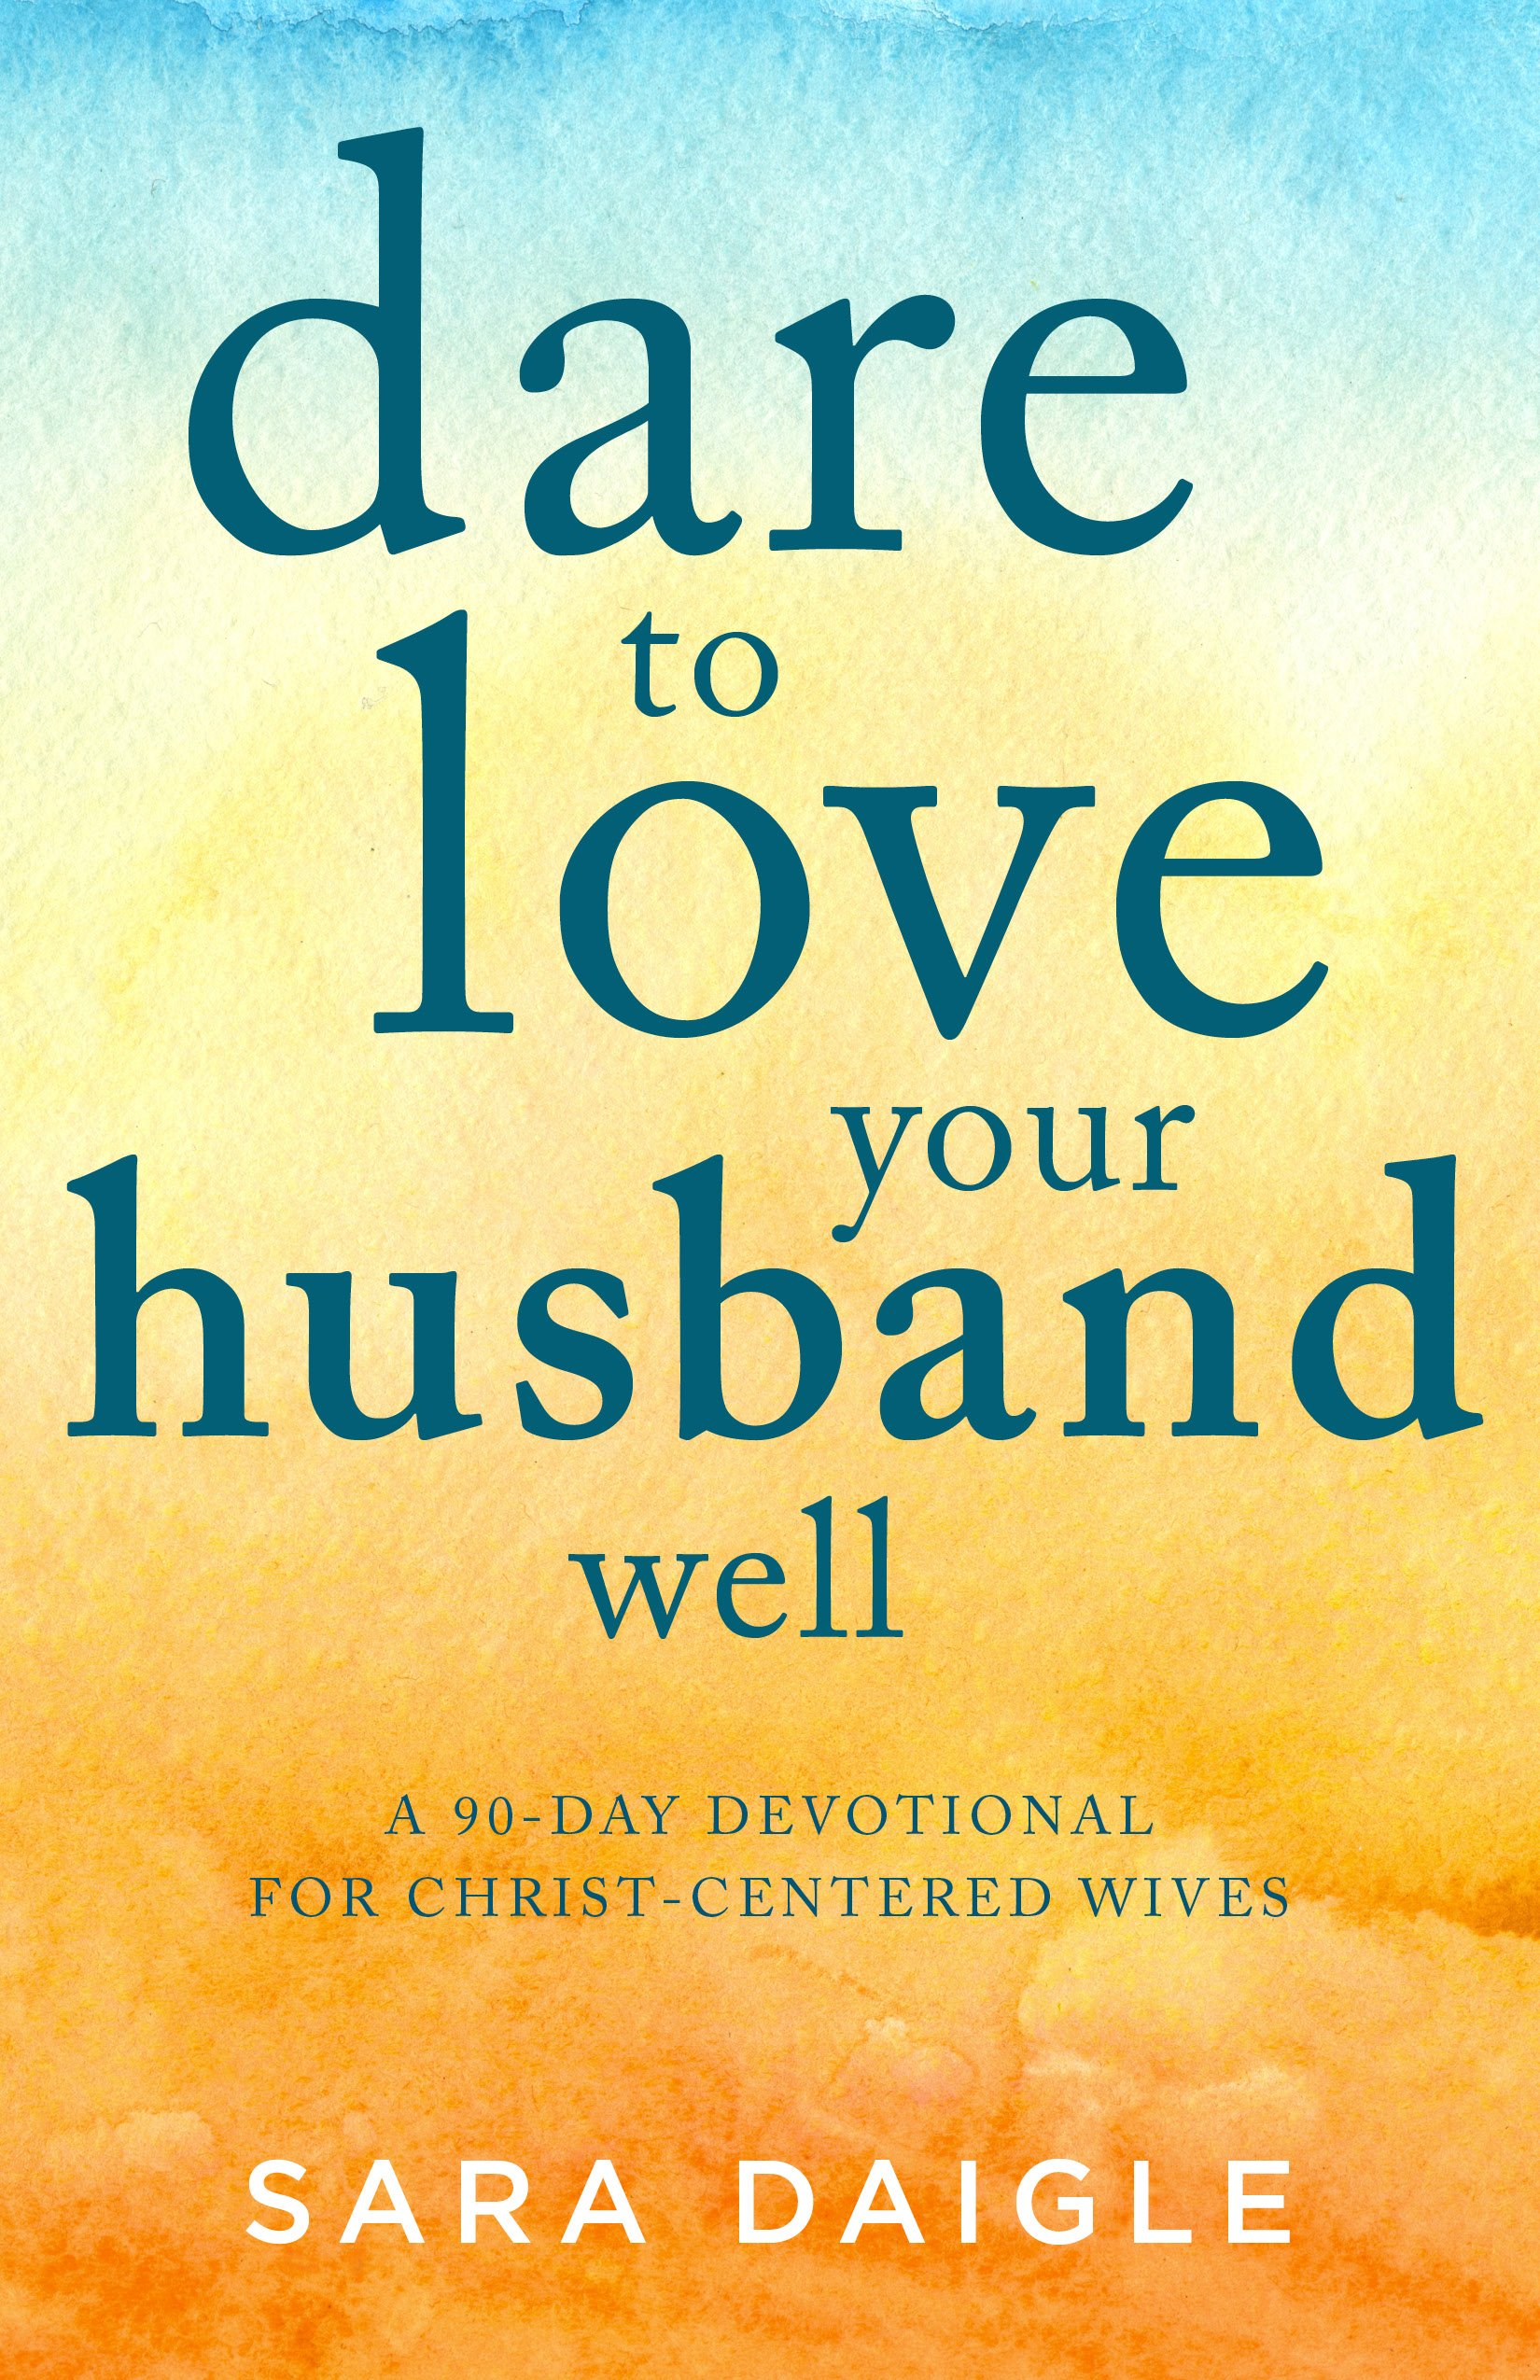 Dare to Love Your Husband Well: A 90-Day Devotional for Christ-Centered Wives by Good Books